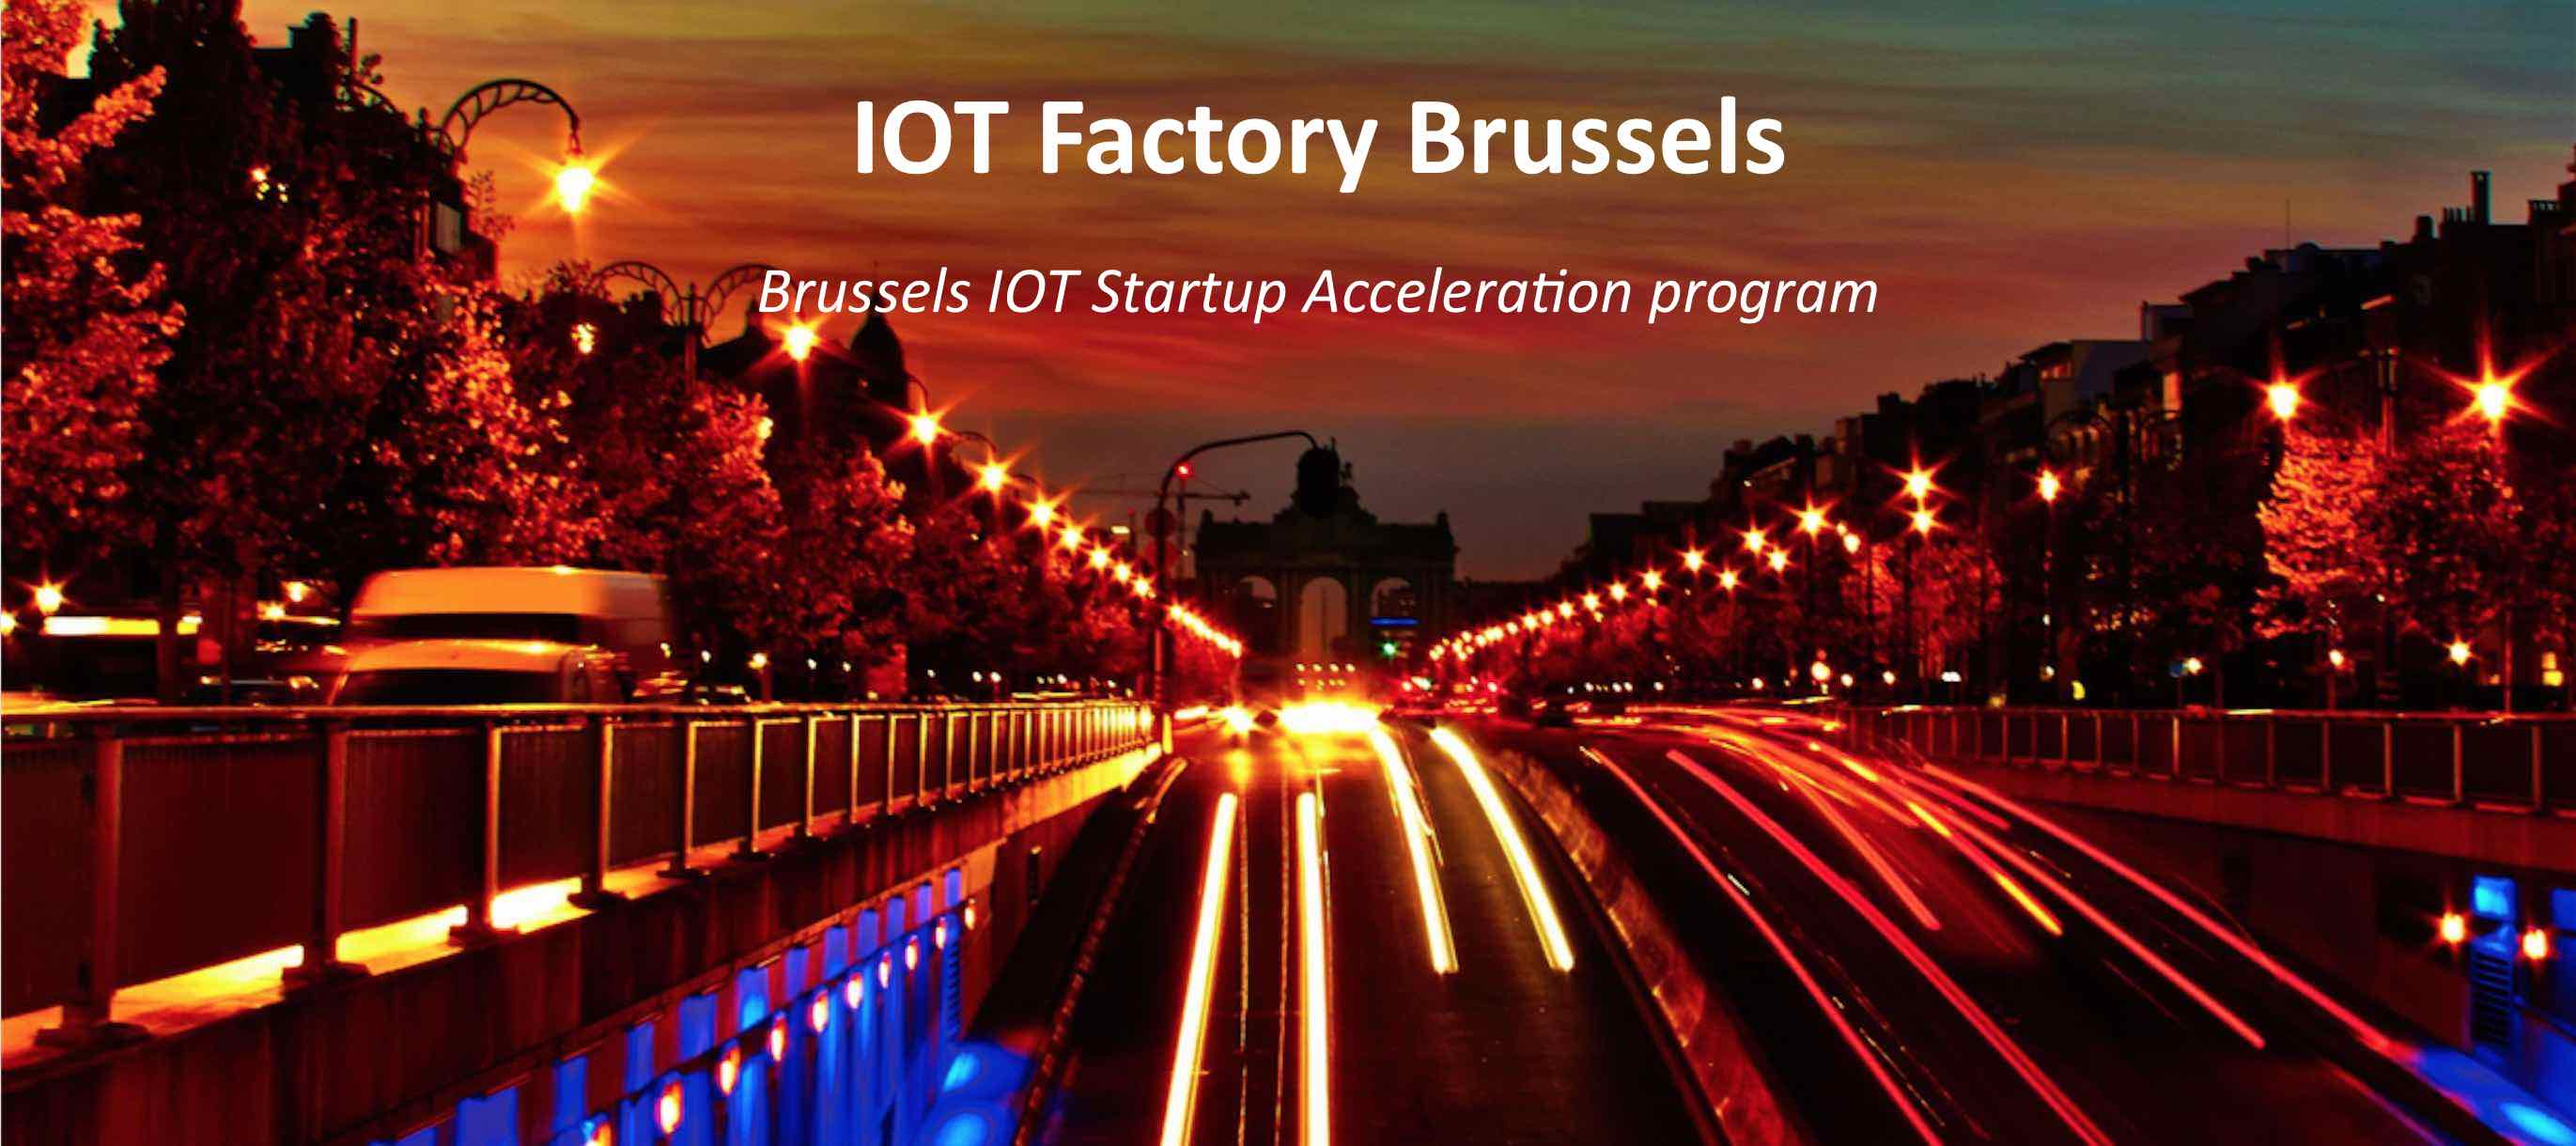 IOT Factory Brussels